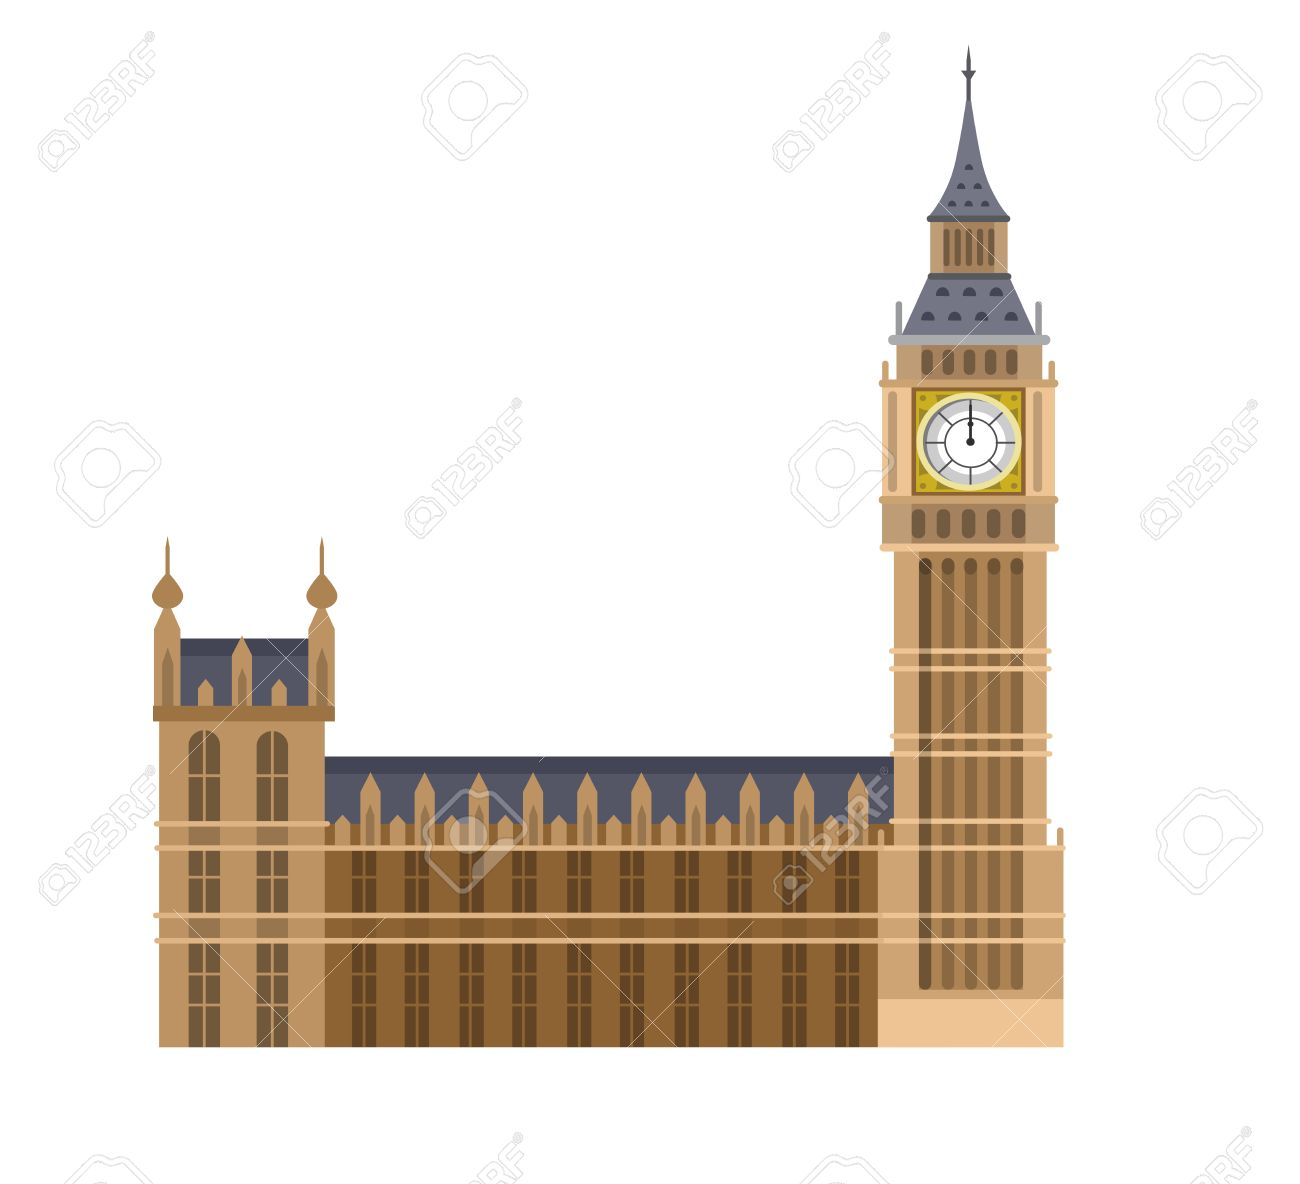 High quality, detailed most famous World landmark. Vector illustration of the Big Ben, the symbol of London and United Kingdom. Travel vector. Travel illustration. Travel landmarks. Happy travel - 57313289